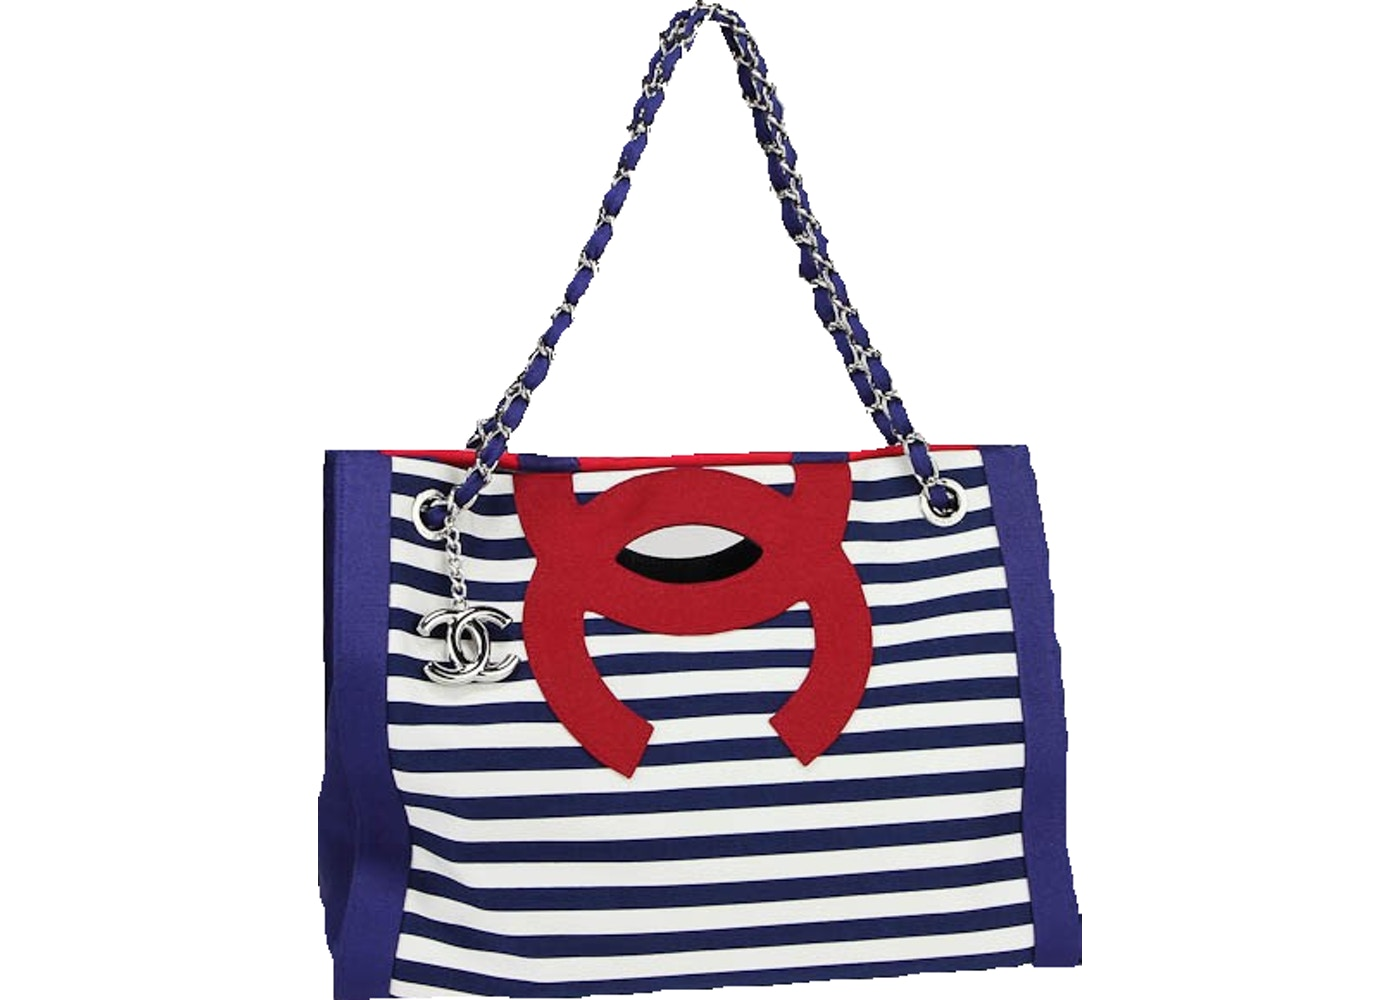 d54f84b16aa3 Chanel Striped Tote Medium Red/White/Blue